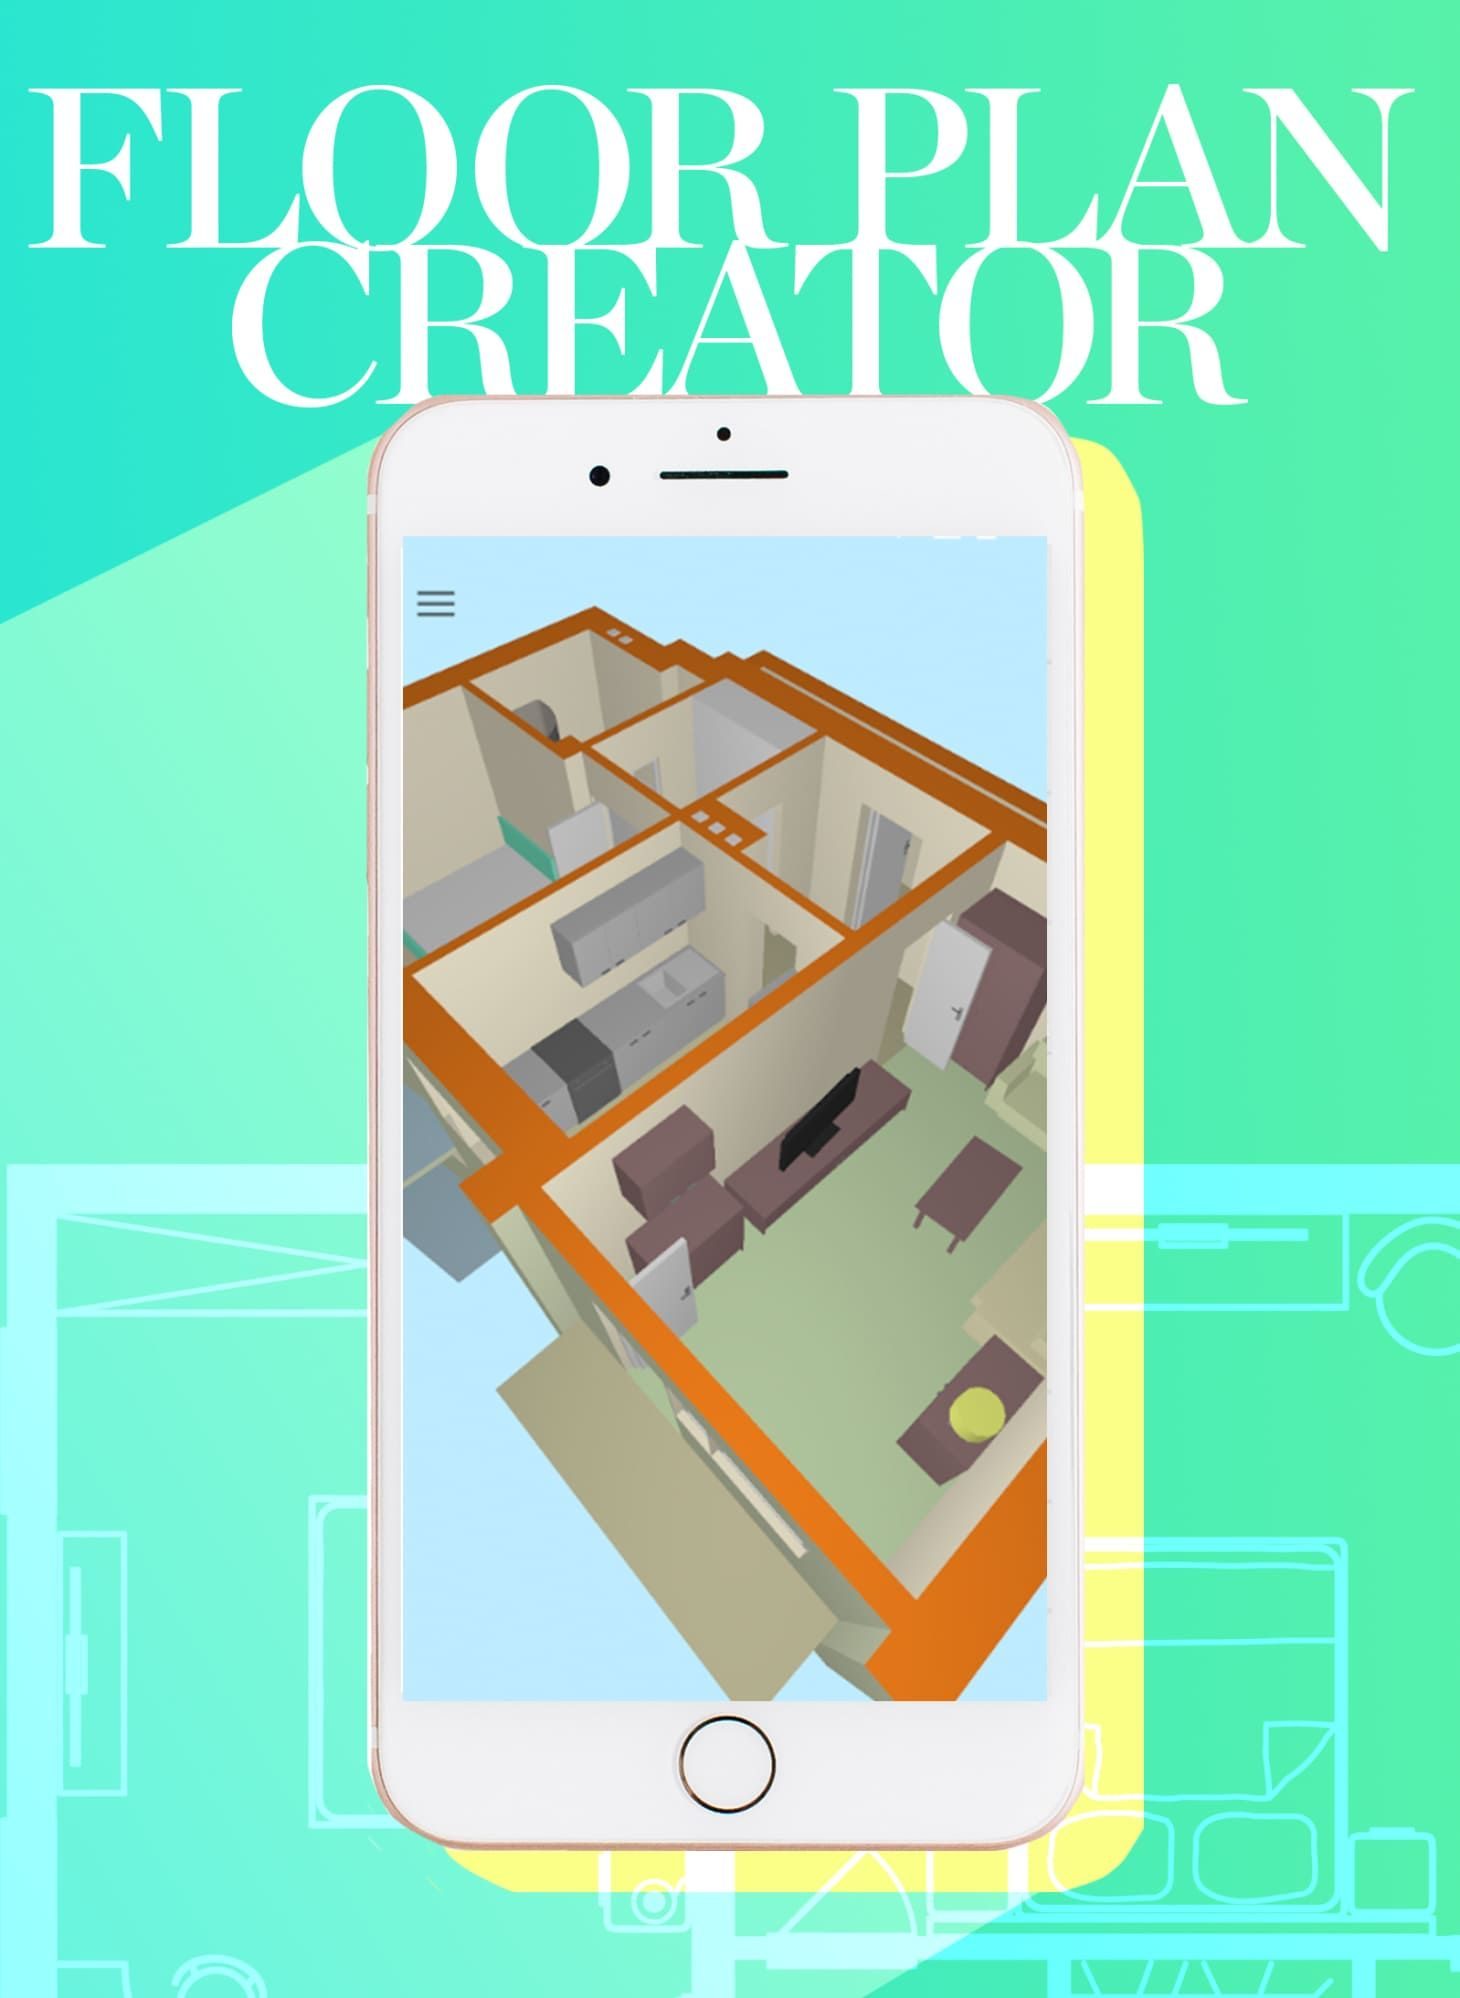 The 10 Best Apps For Planning A Room Layout And Design Home Design Floor Plans Floor Plan App Room Layout